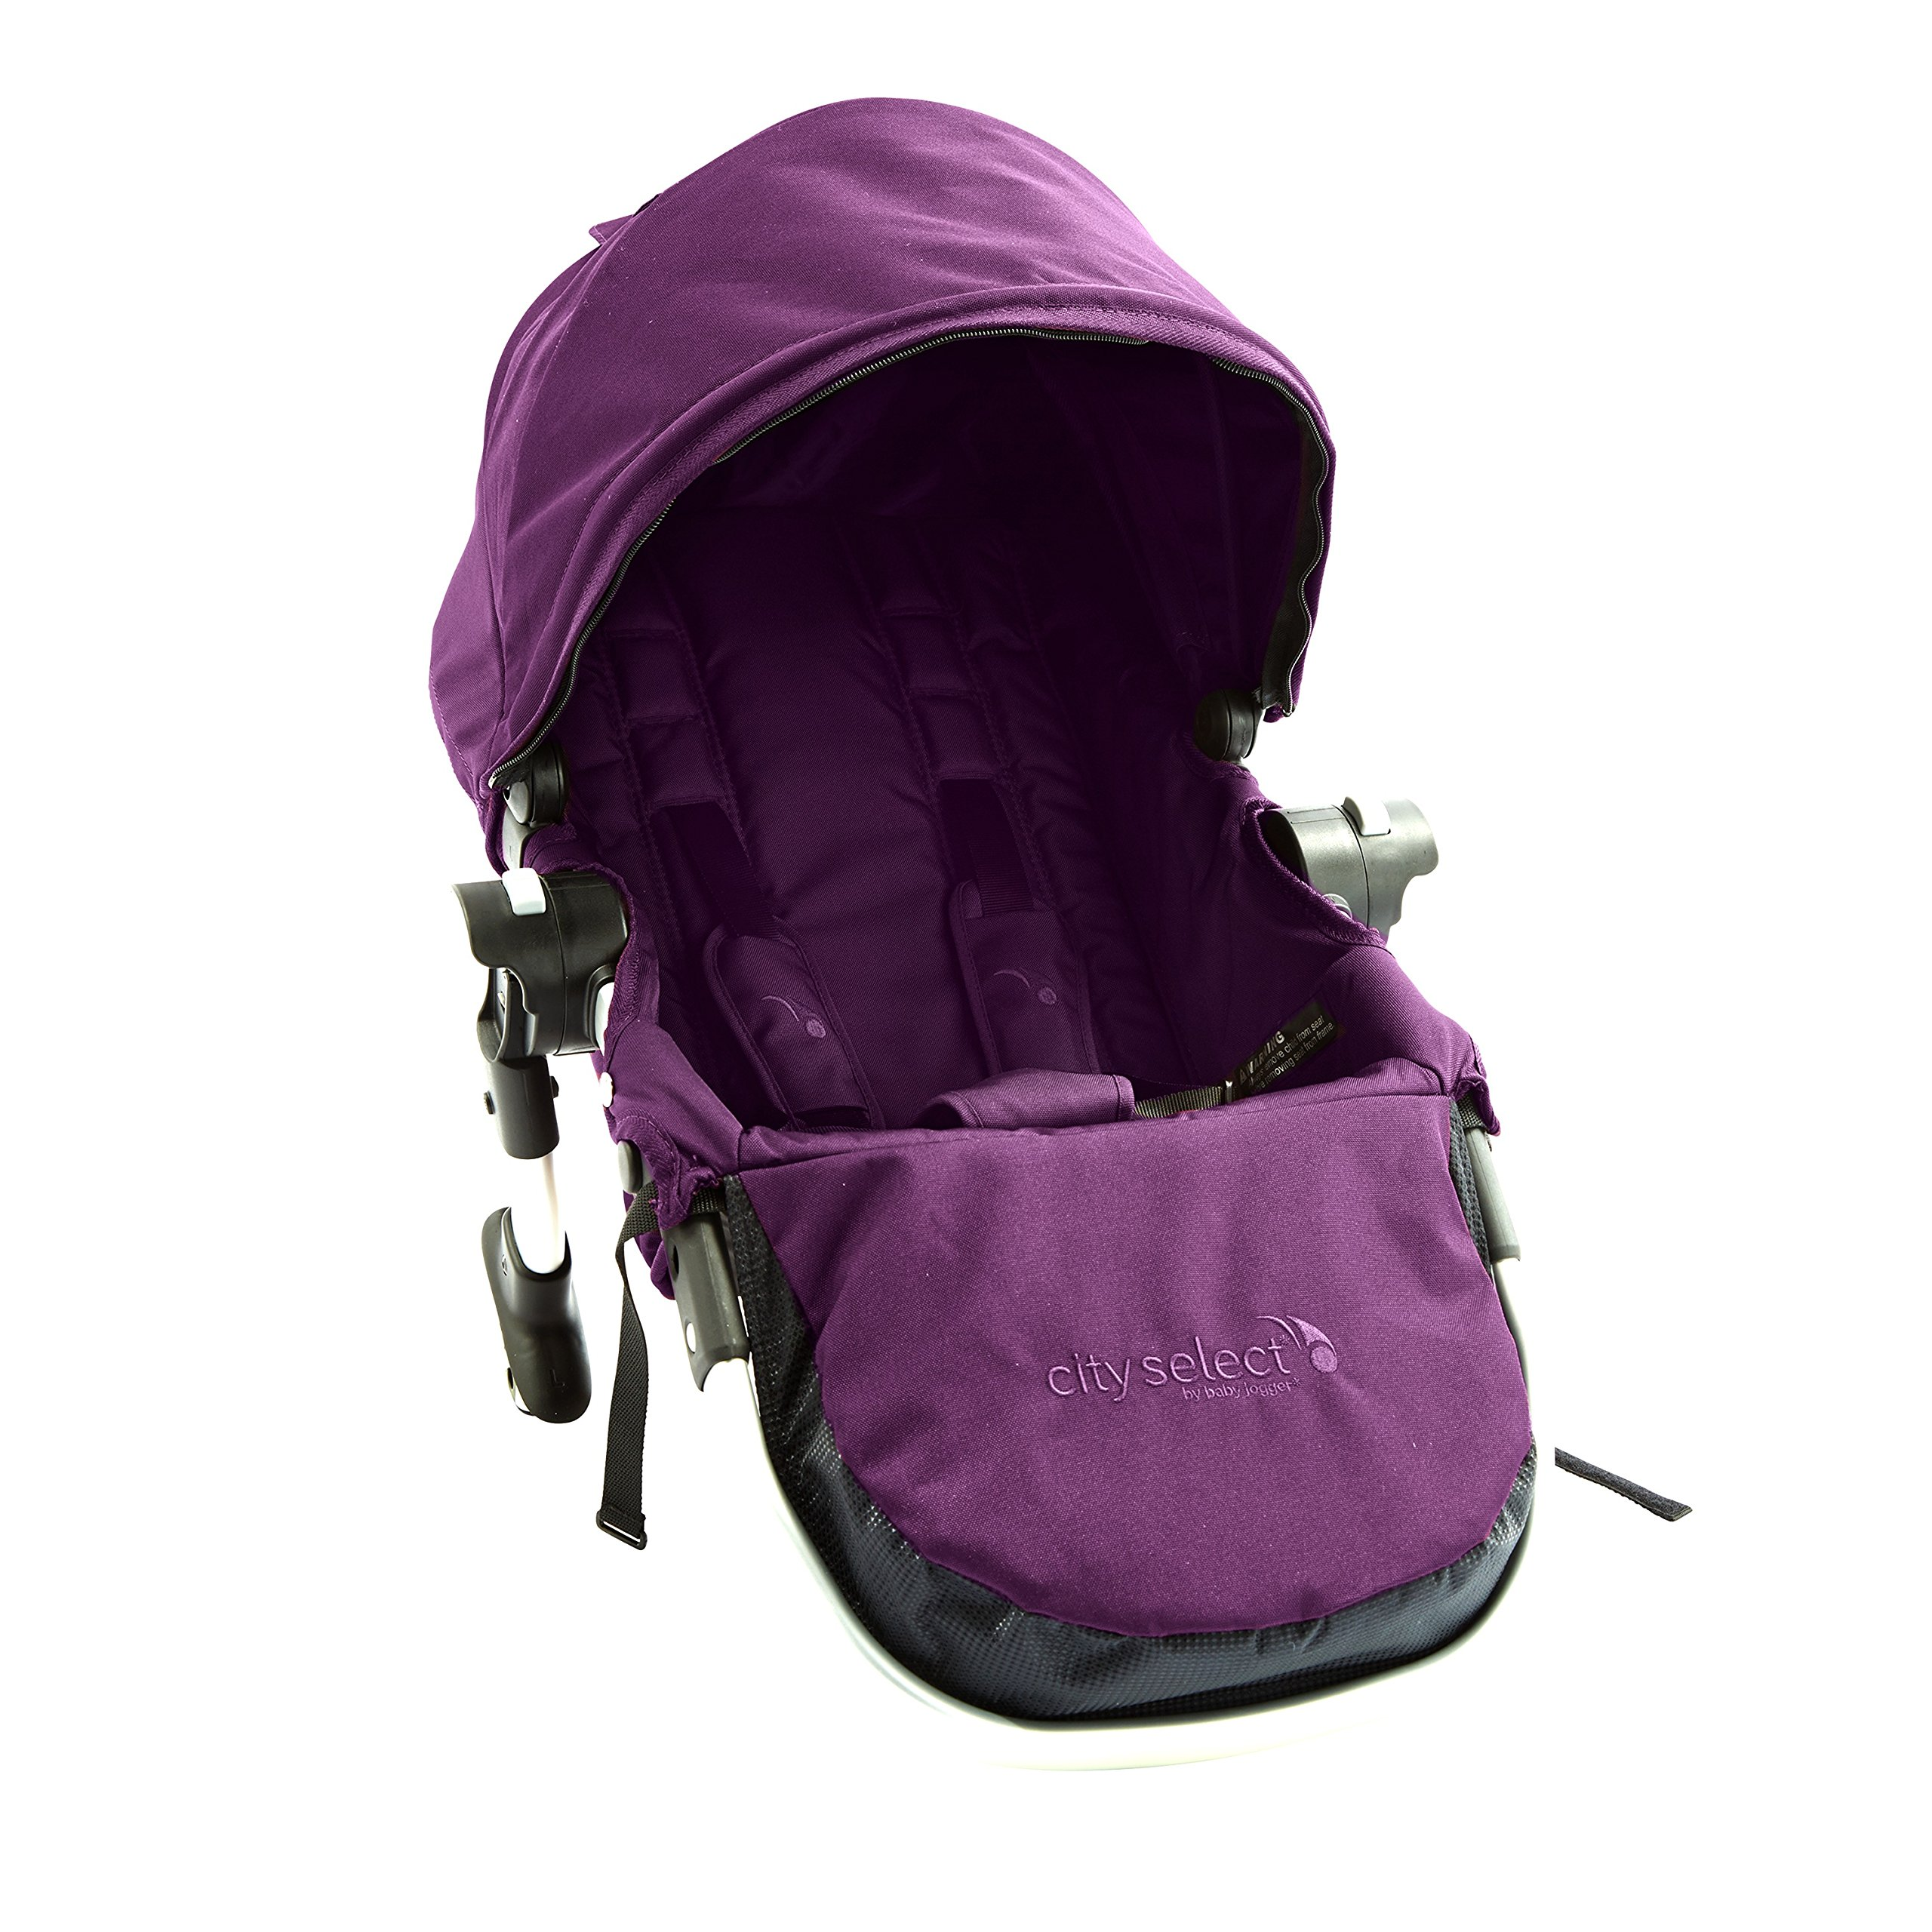 Baby Jogger City Select Silver Frame Second Seat Kit, Amethyst